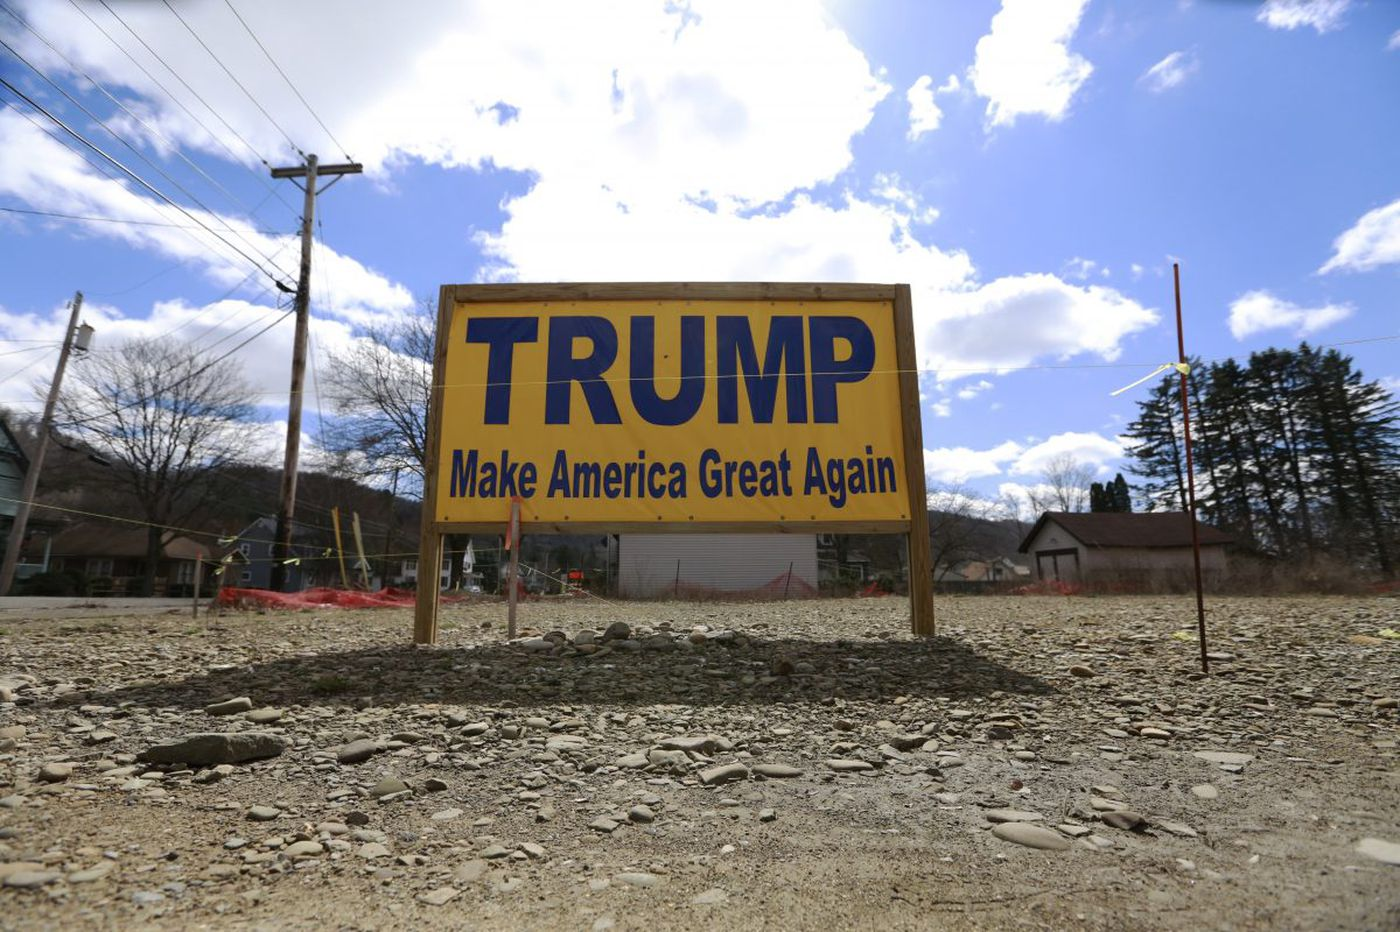 Support for Trump slipping in rural America?